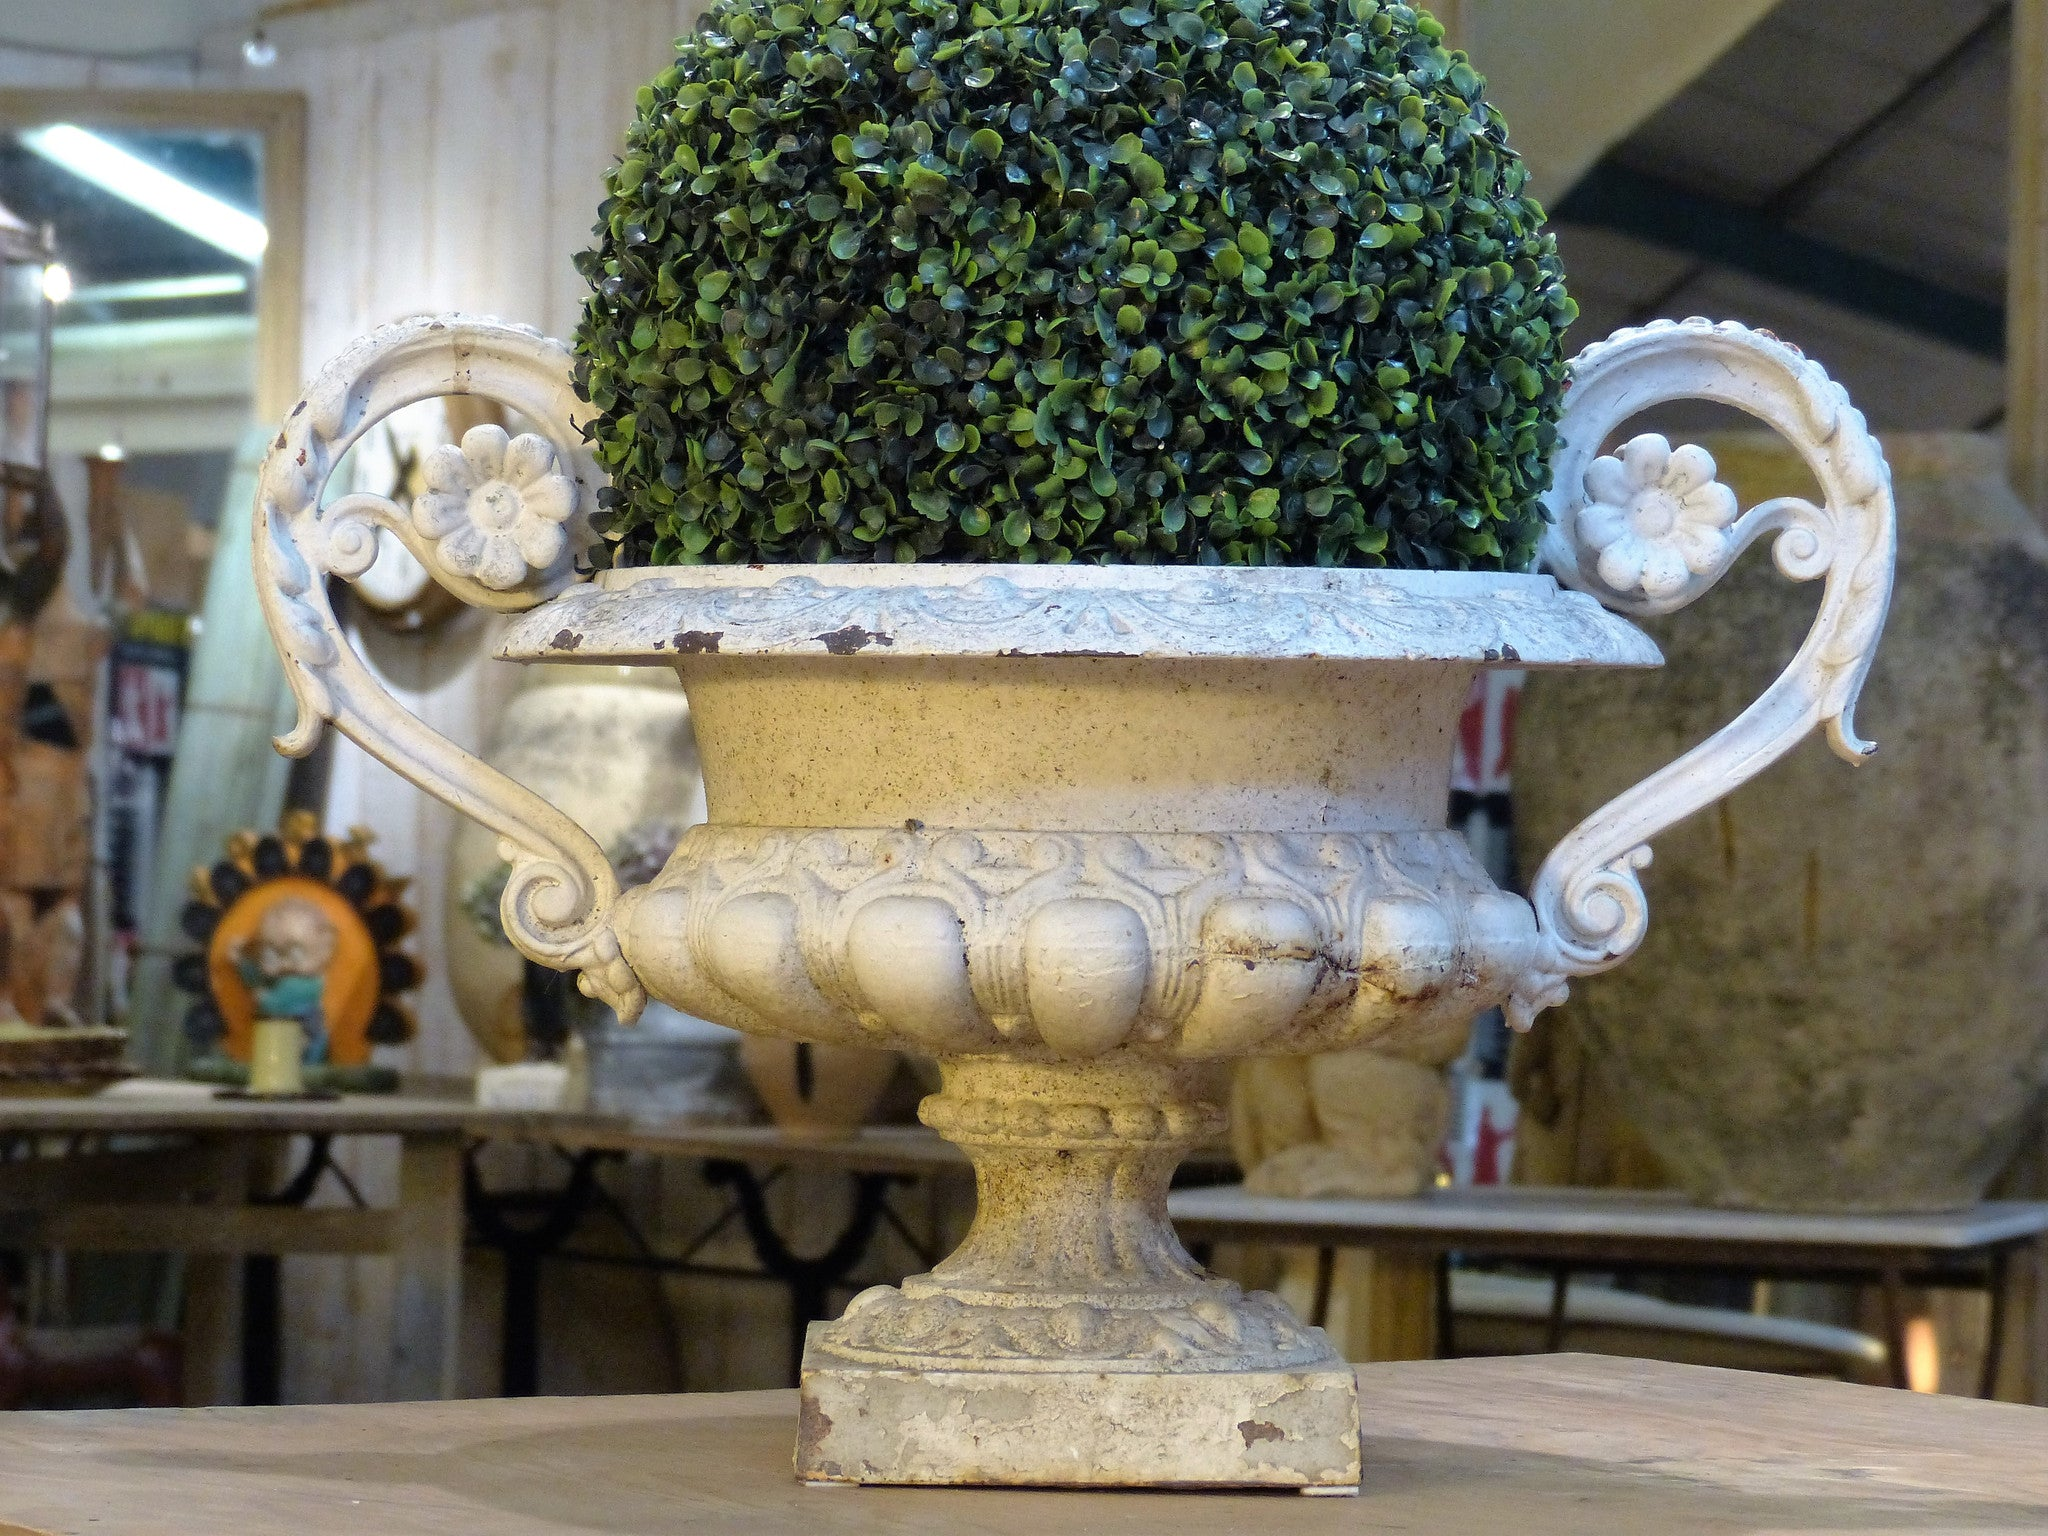 Large 19th century white Medici urn with sculptural handles